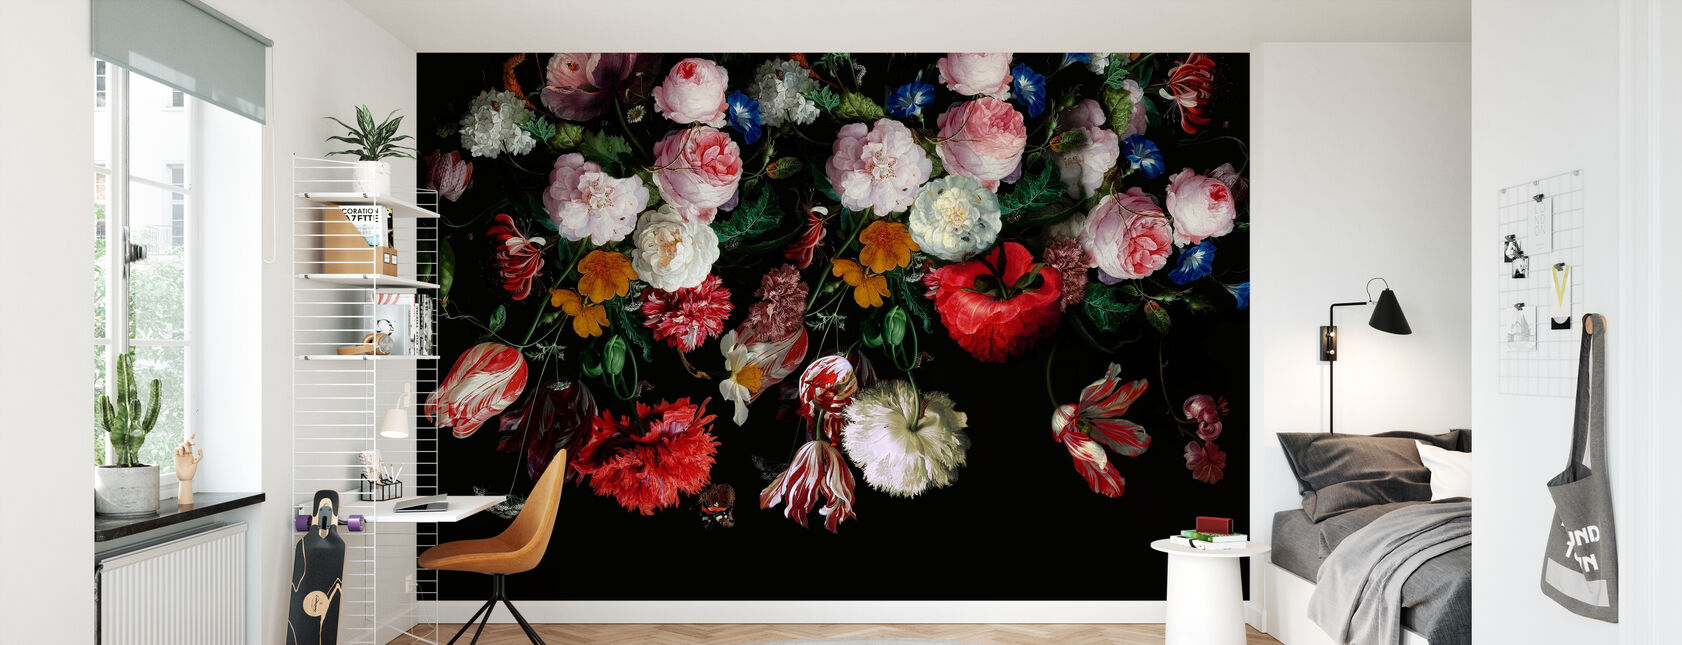 Colourful Flowers on Black Background - Wallpaper - Kids Room